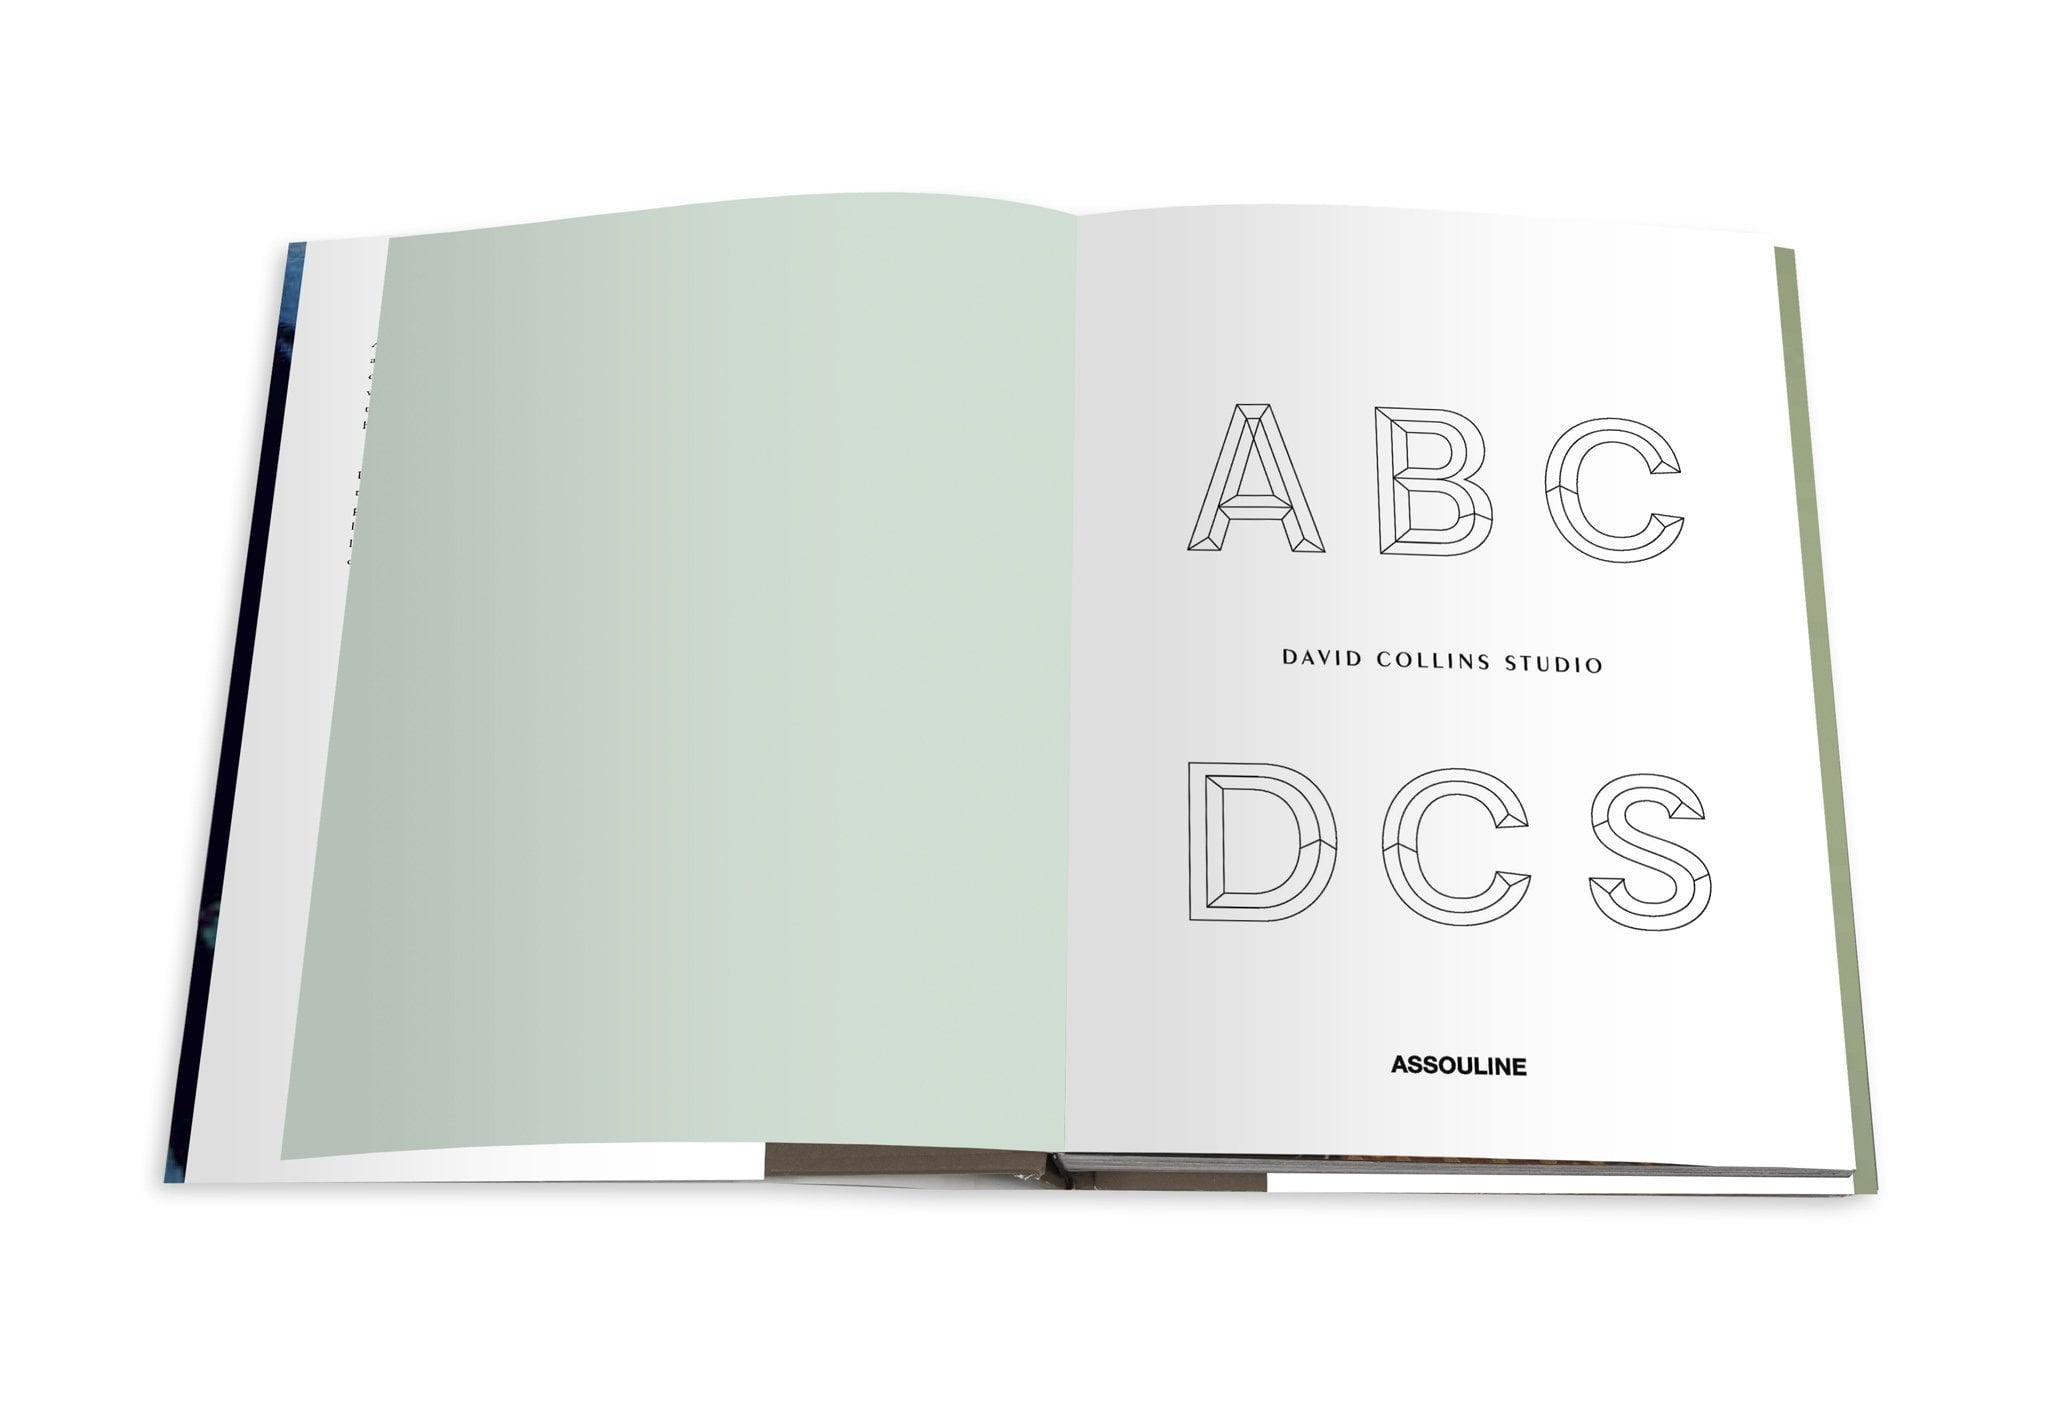 David Collins Studio : ABCDCS - Assouline